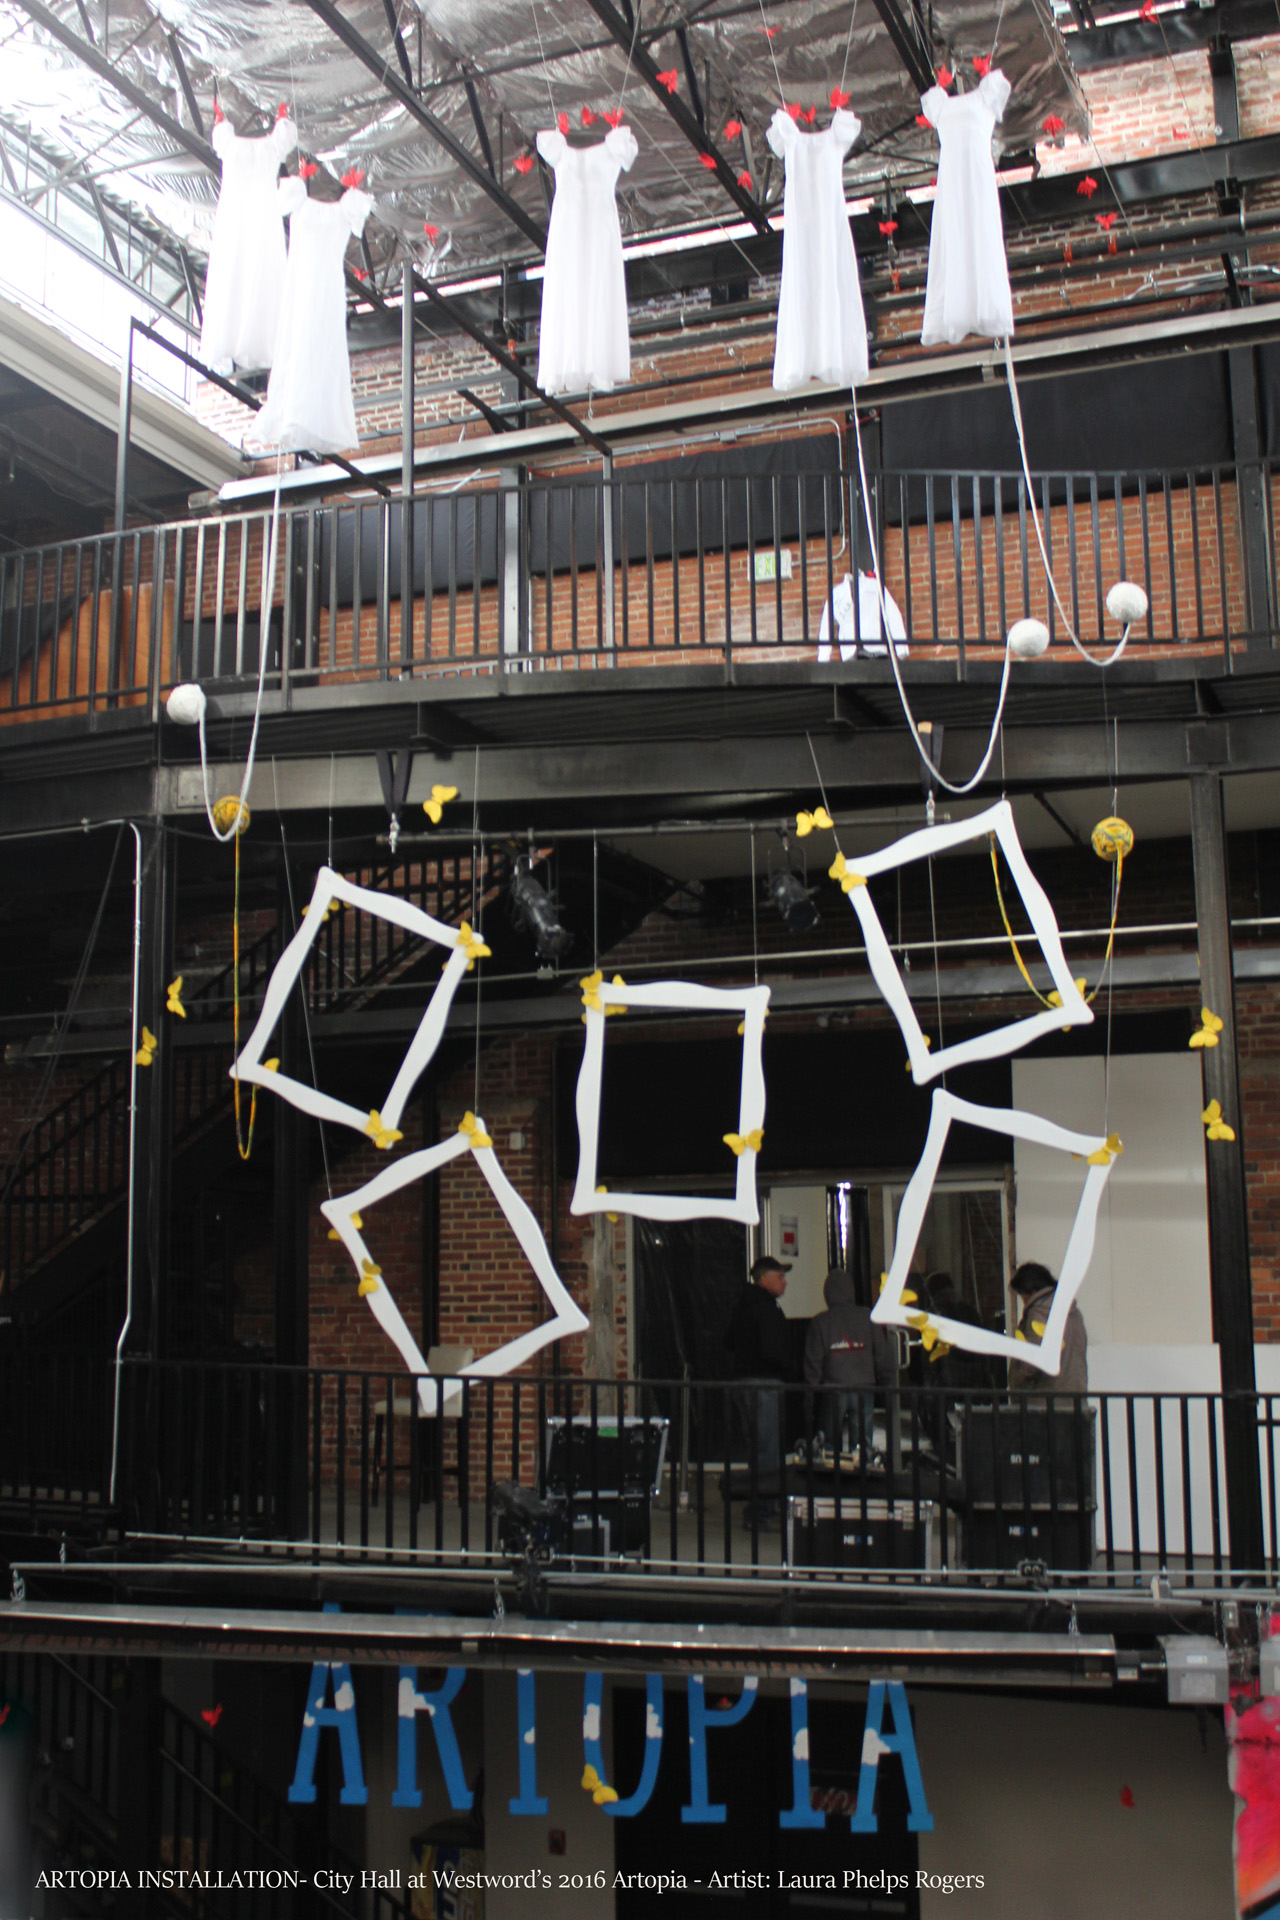 ARTOPIA INSTALLATION the day after City Hall deinstall from Westword's 2016 Artopia_ Laura Phelps Rogers.jpg